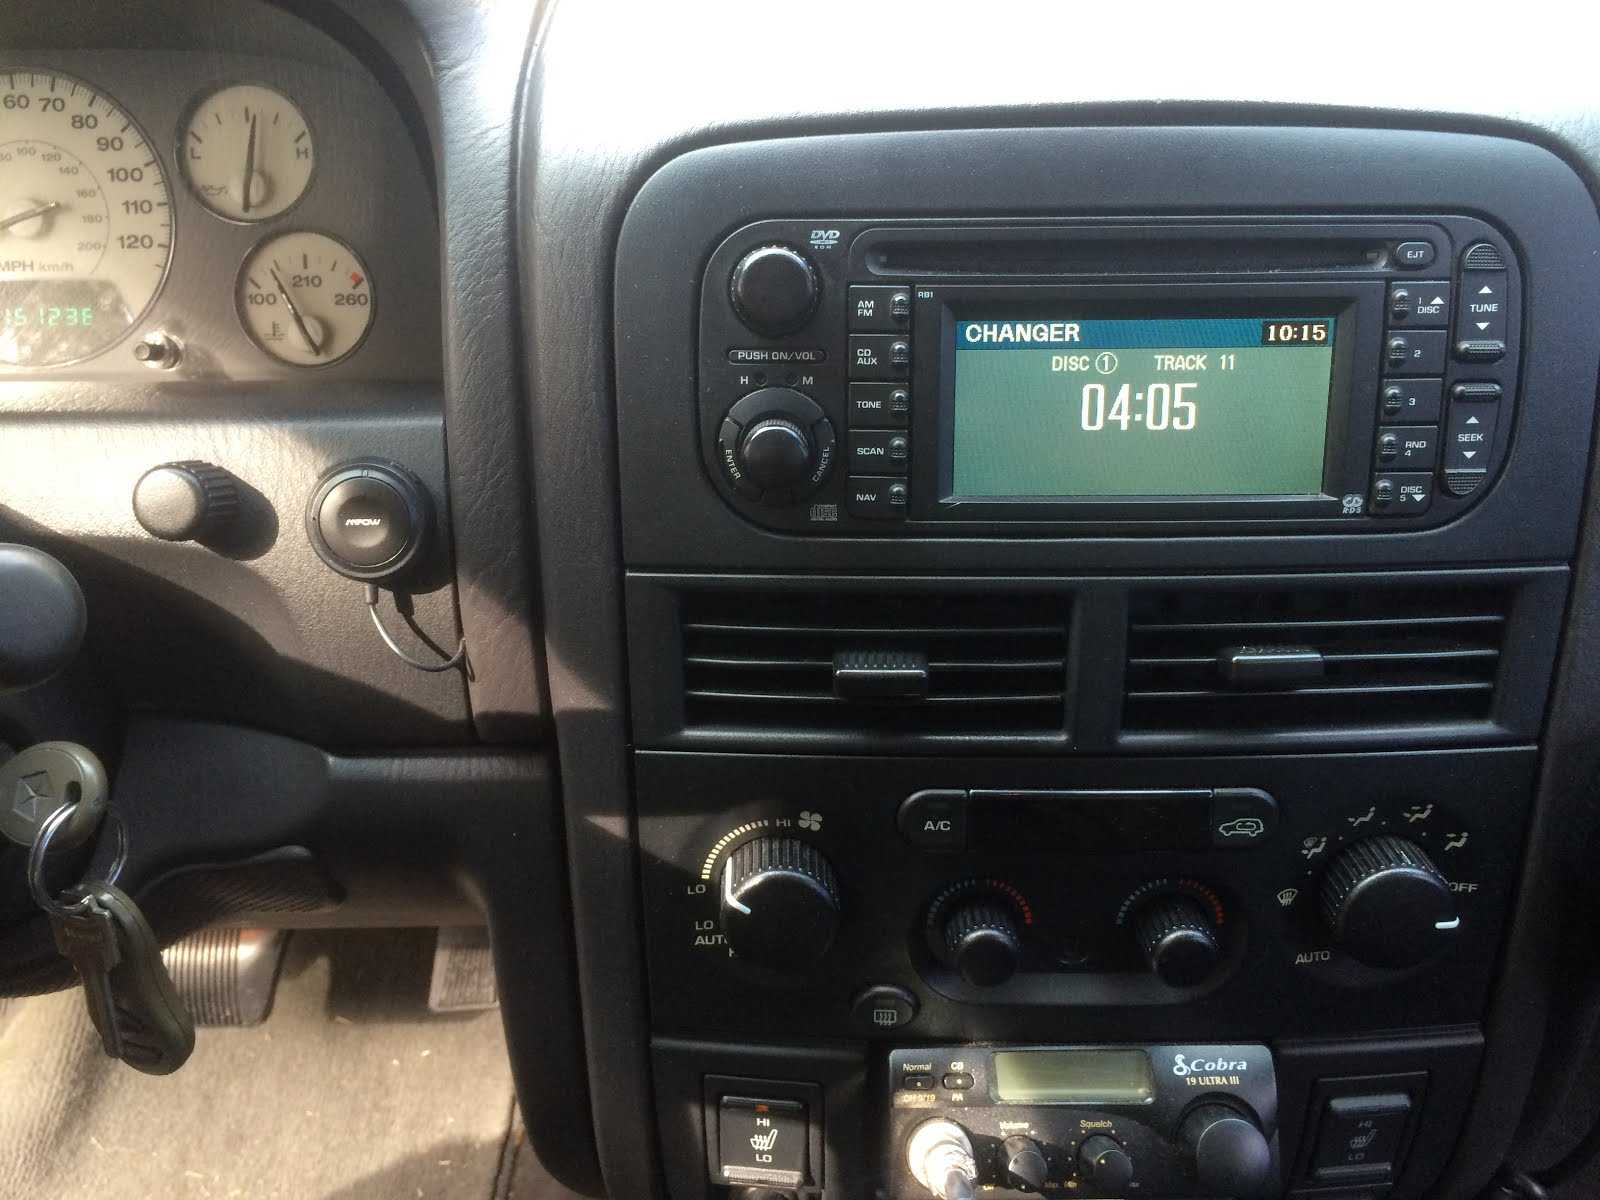 99 Grand Cherokee Stereo Wiring Diagram Pioneer Avh X2800bs Youtube Jeep Stuff Aux In Bluetooth For Factory Radio Or